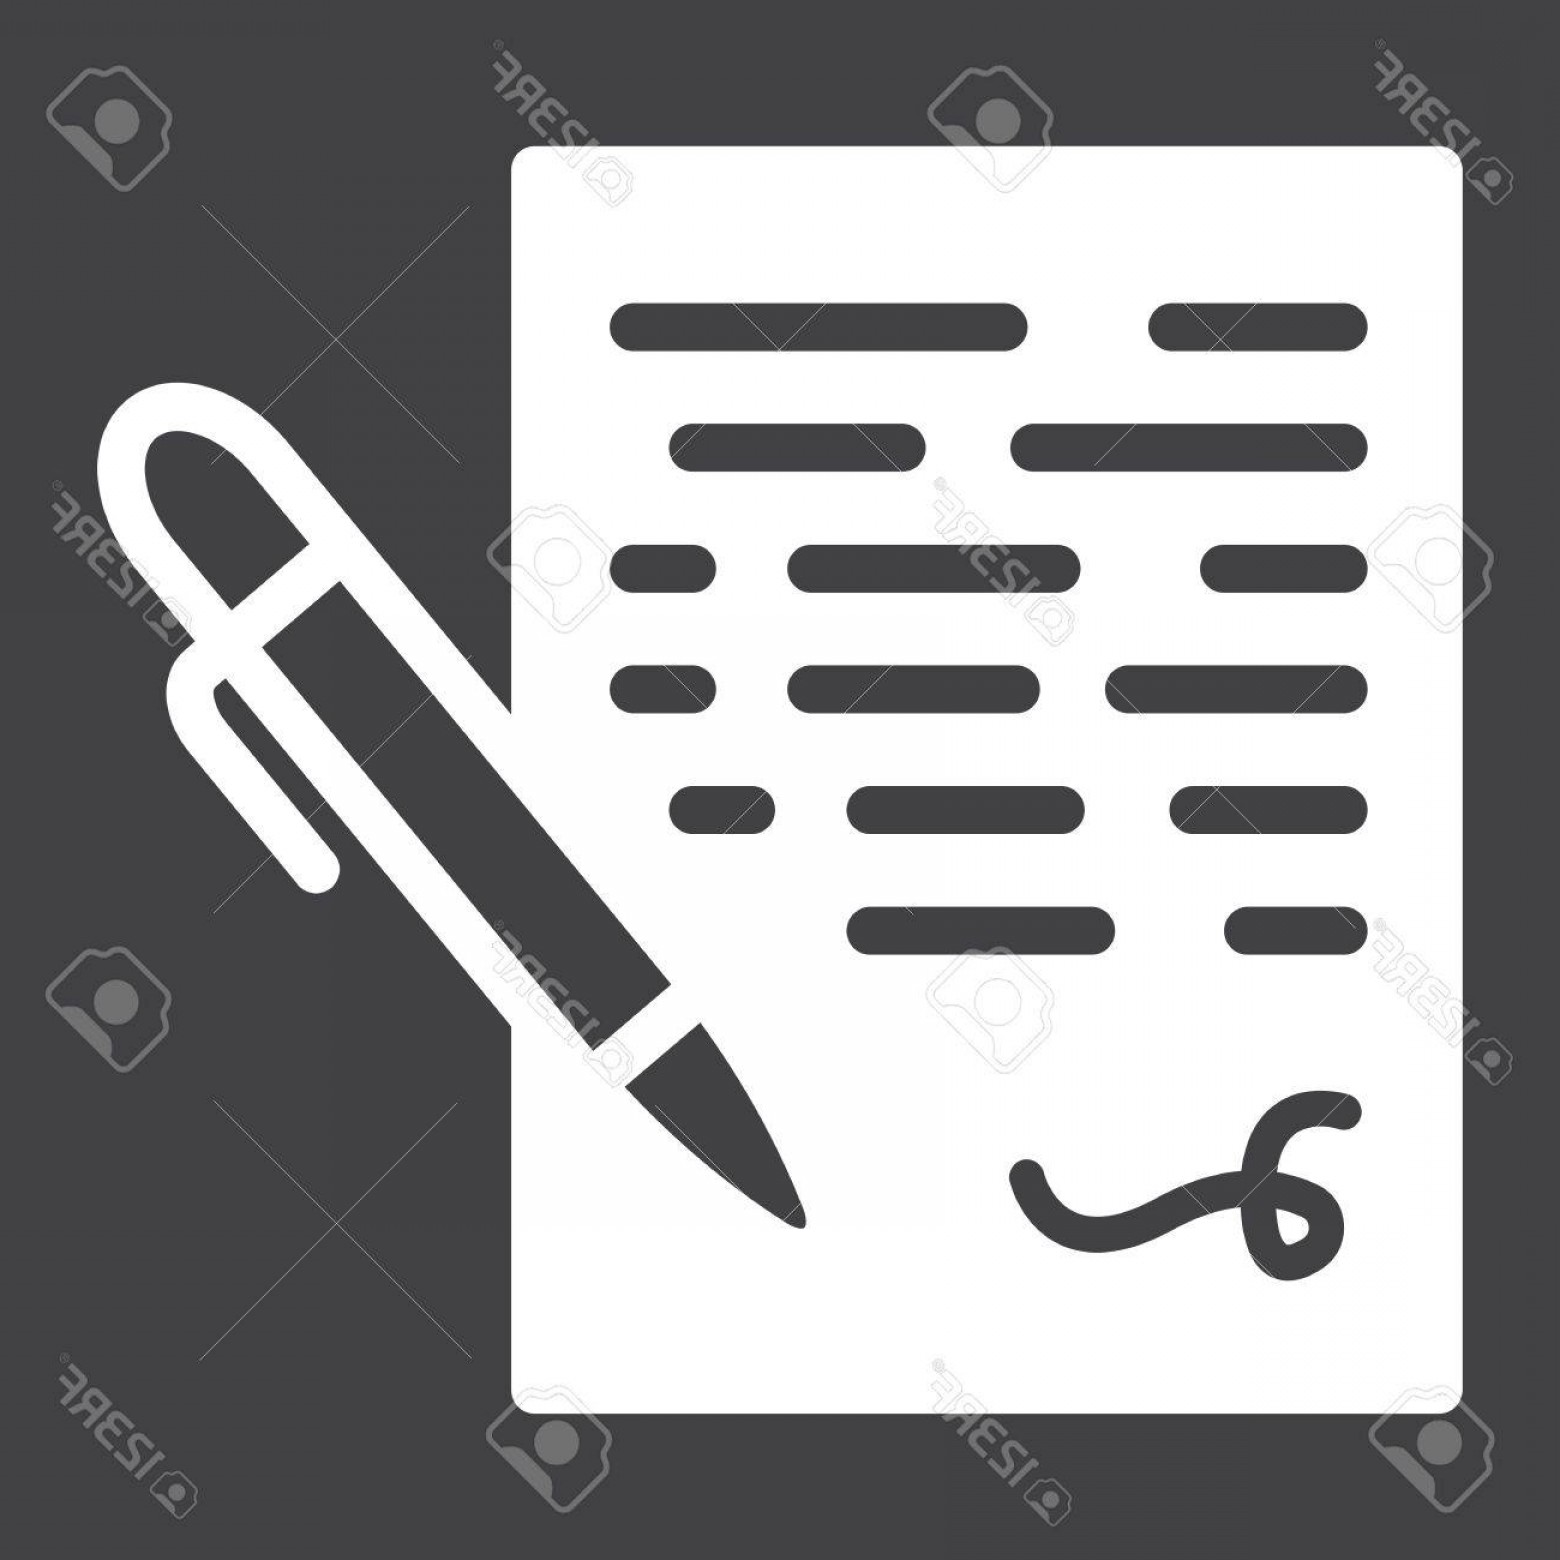 Ways To Write Vector BA: Photostock Vector Pen Signing Solid Icon Business Contract And Signature Vector Graphics A Glyph Pattern On A Black Ba